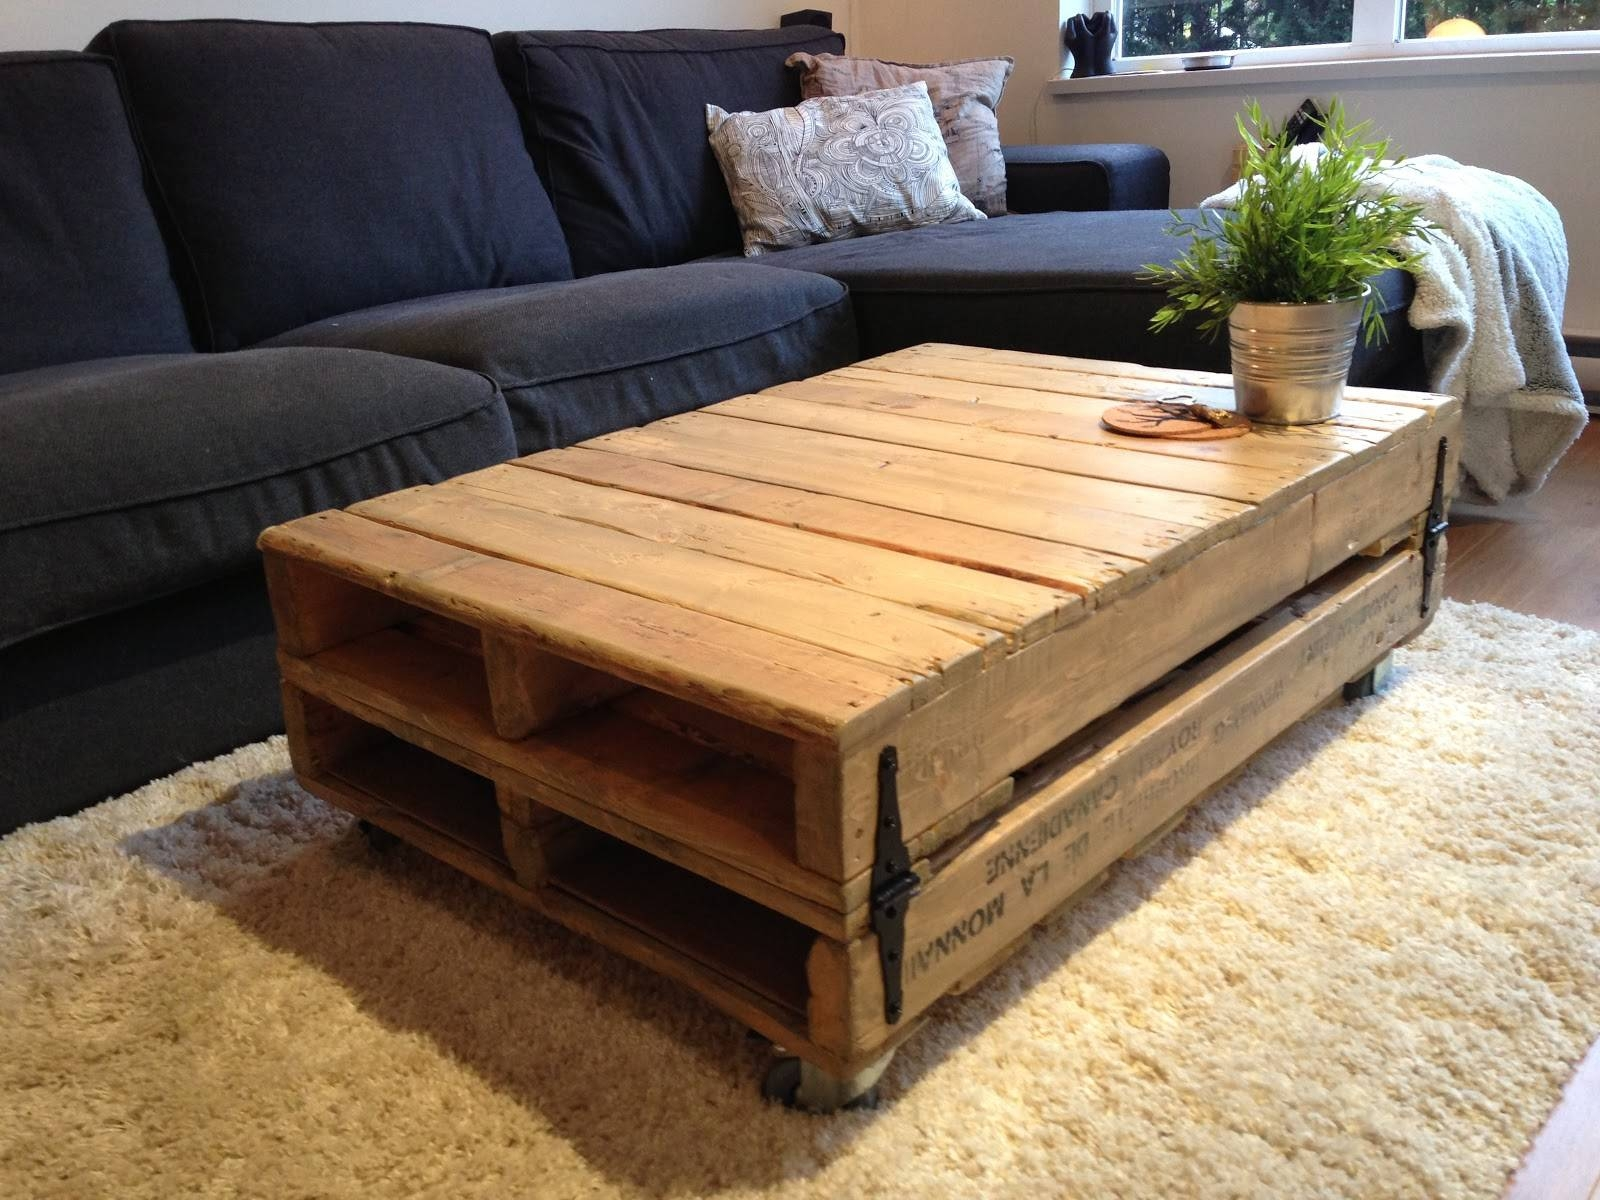 30 Ideas of C Coffee Tables